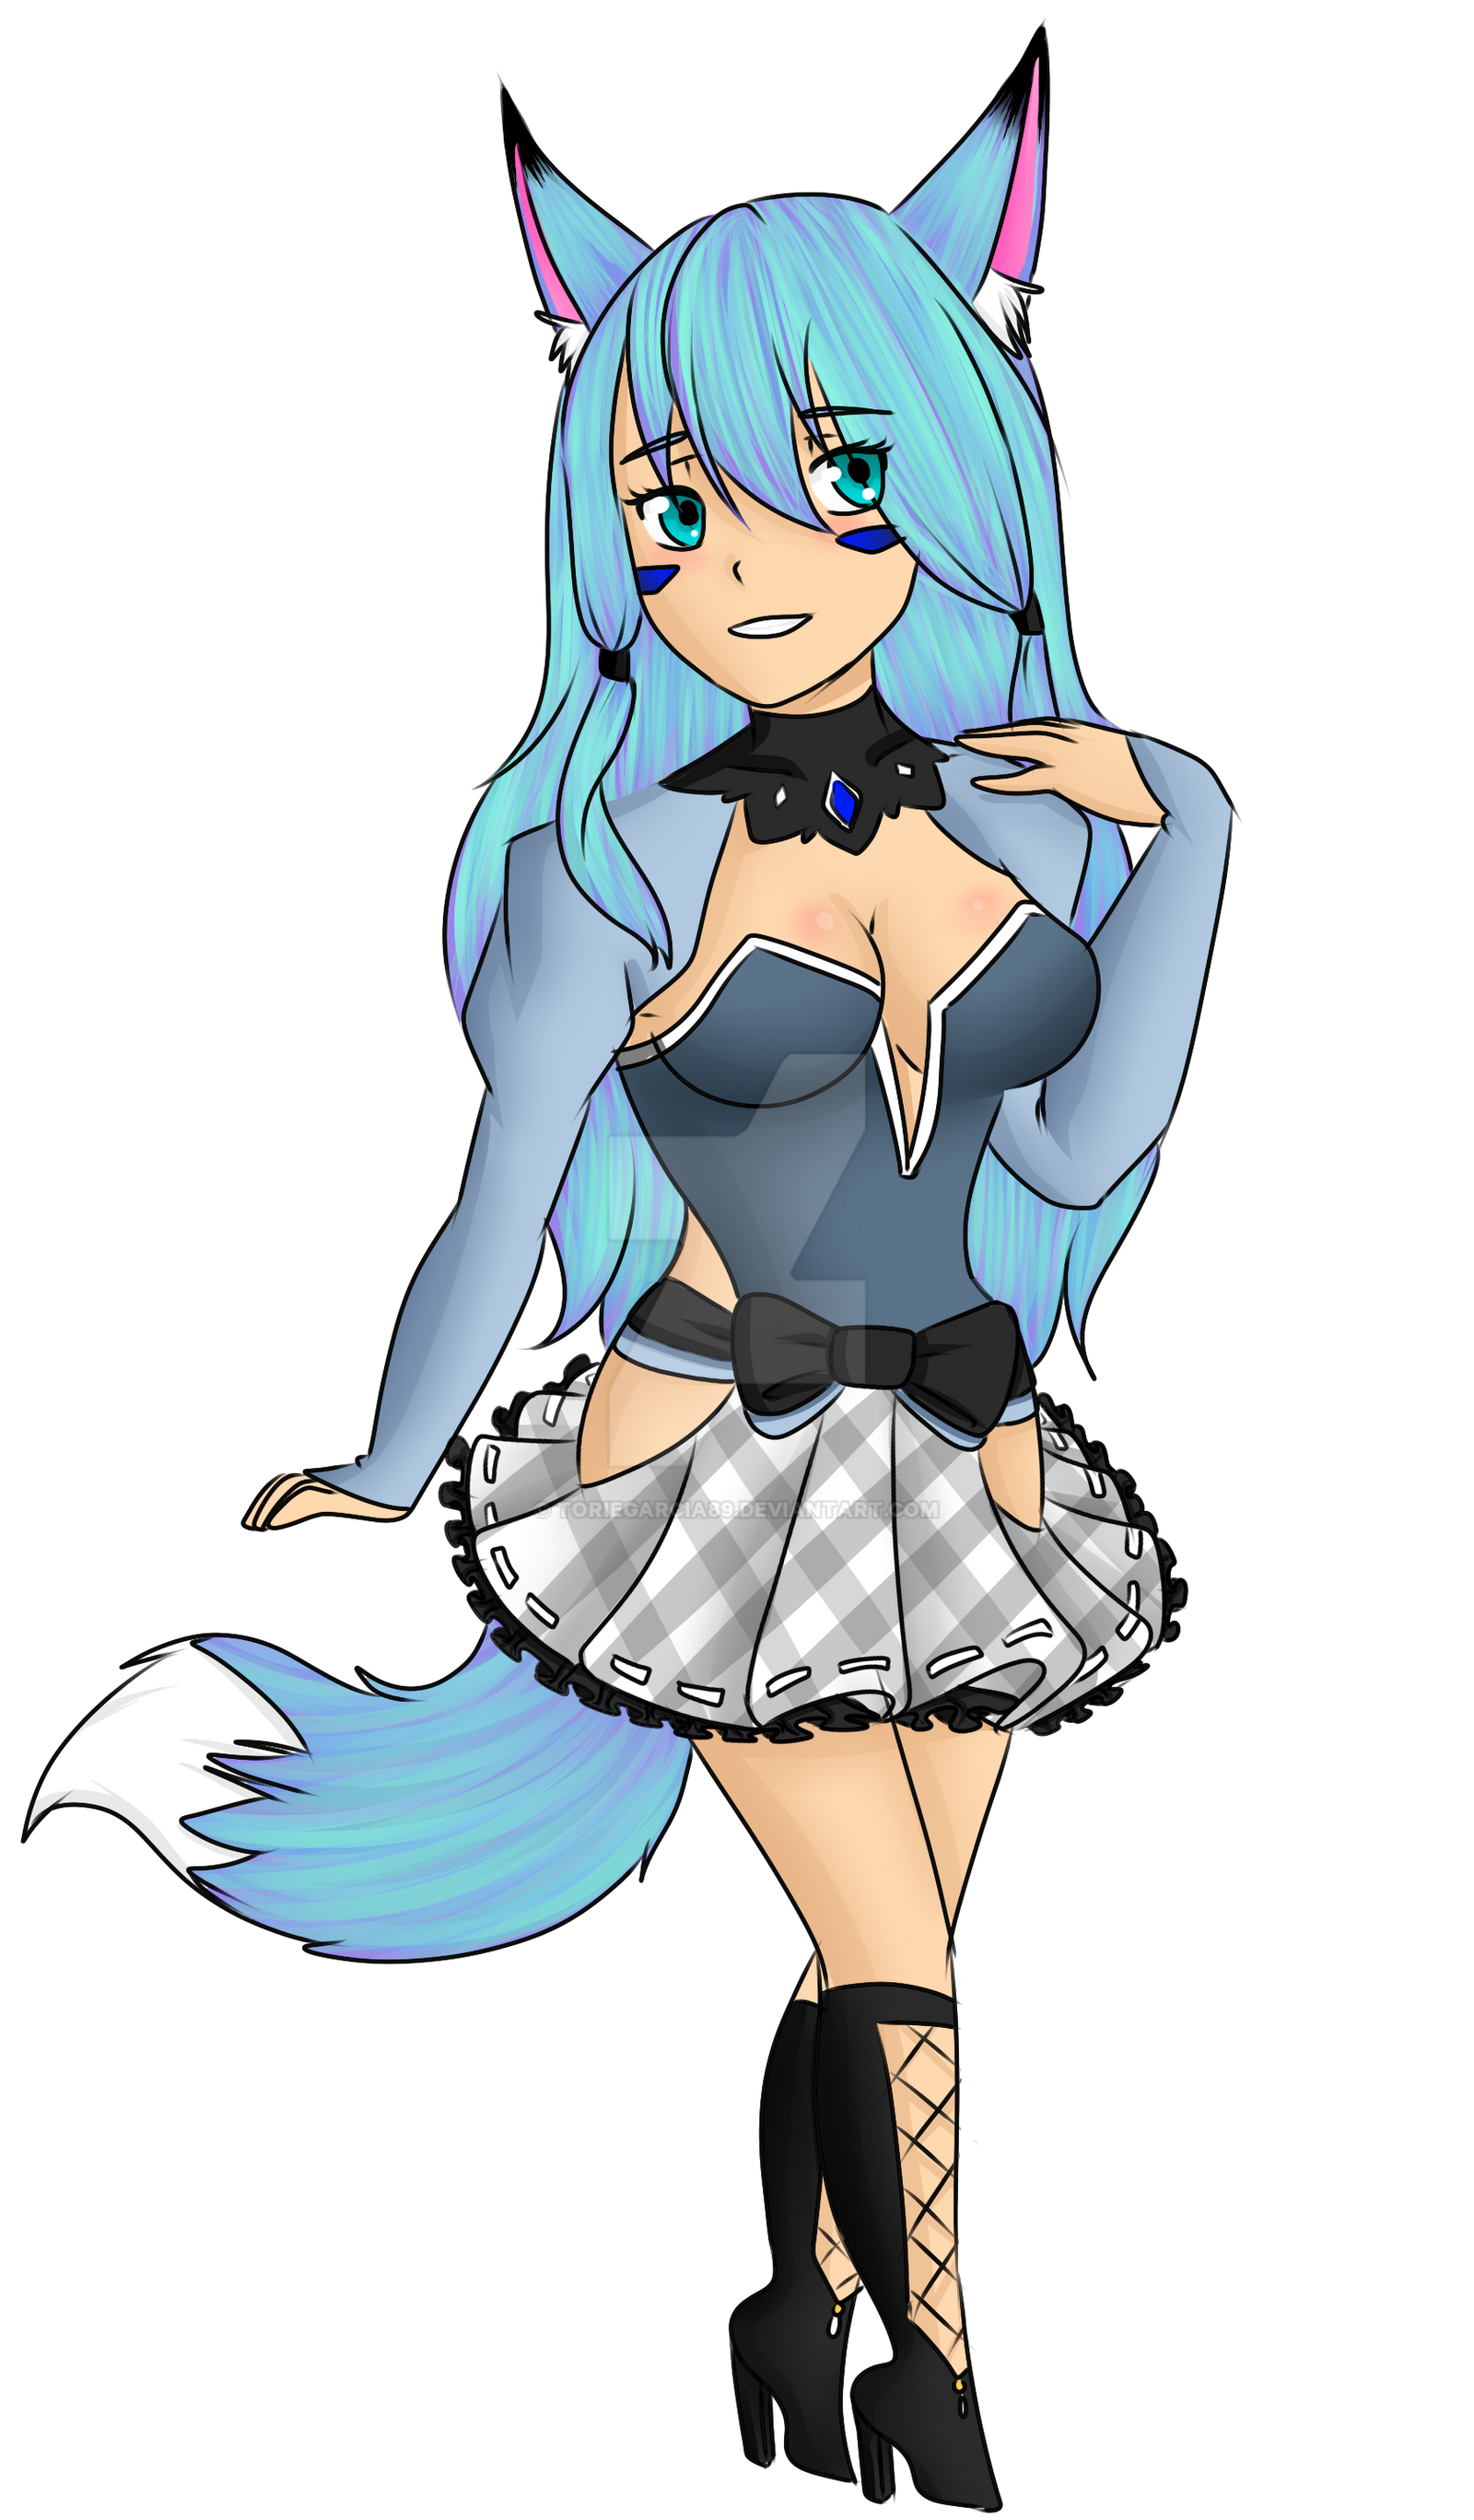 Freiya Foxy Mascot for Ice Master [Commission] by toriegarcia89